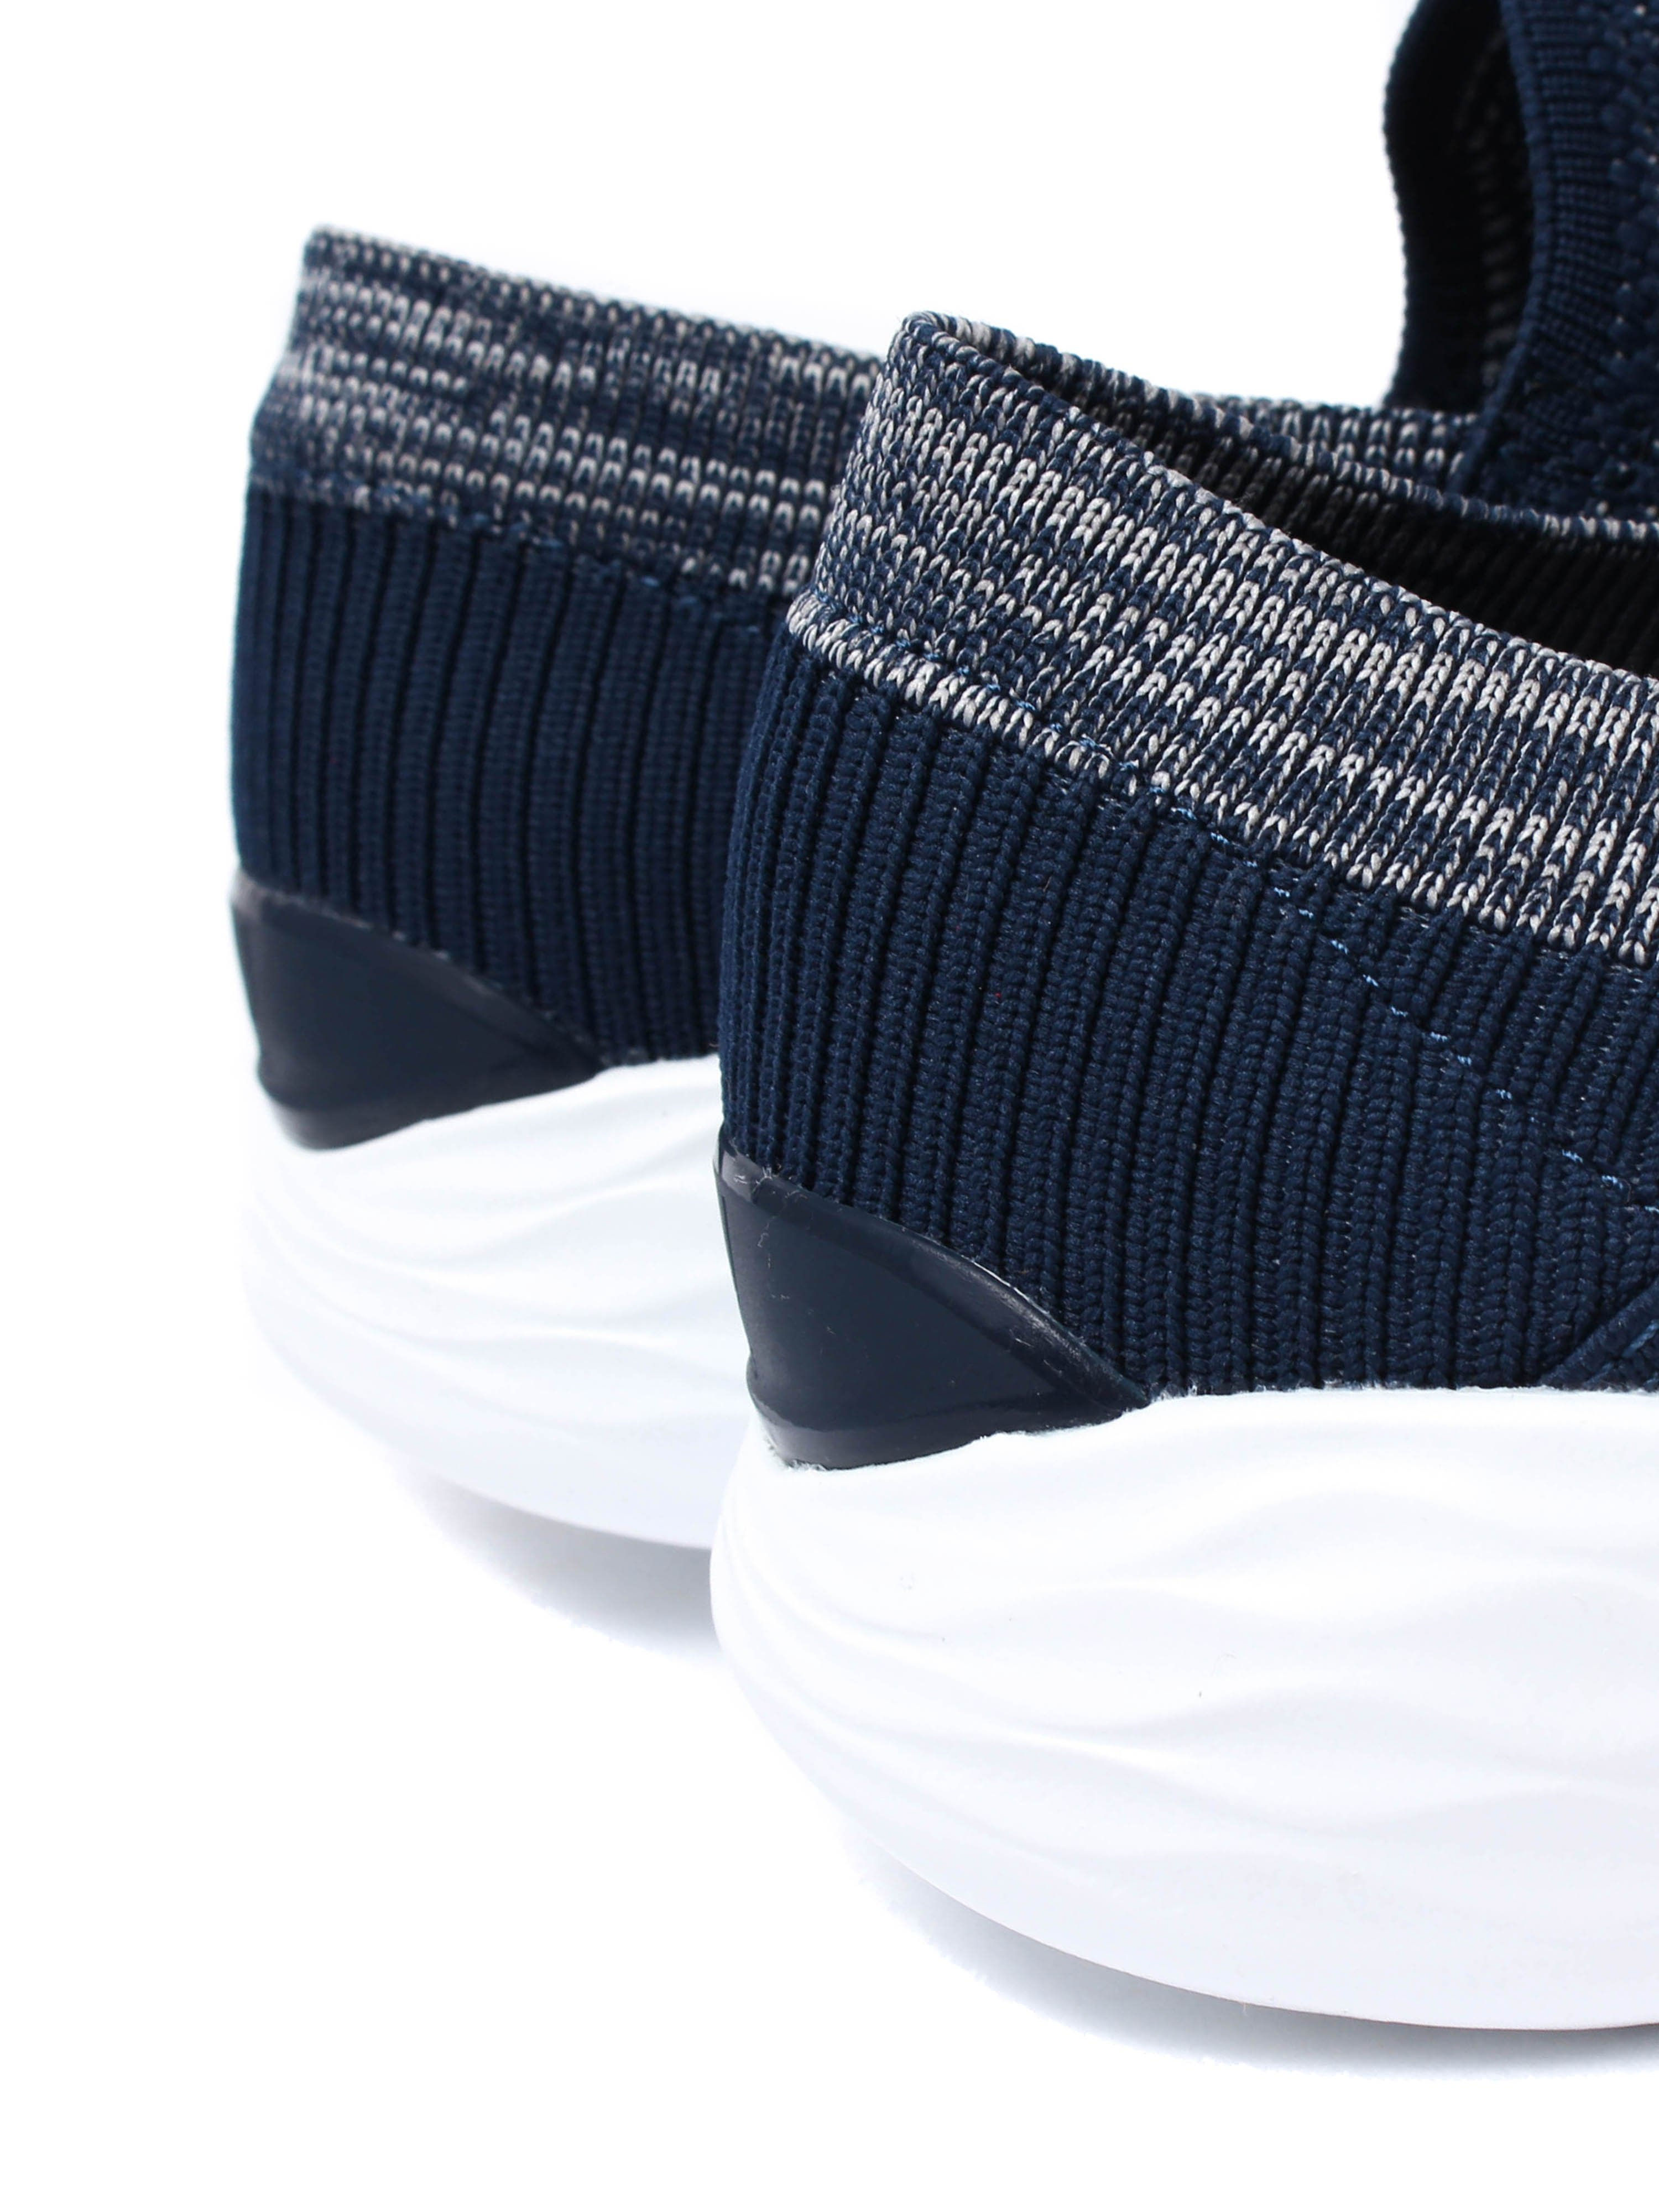 Skechers Women's Slip On Breast Cancer Care Trainers - Navy